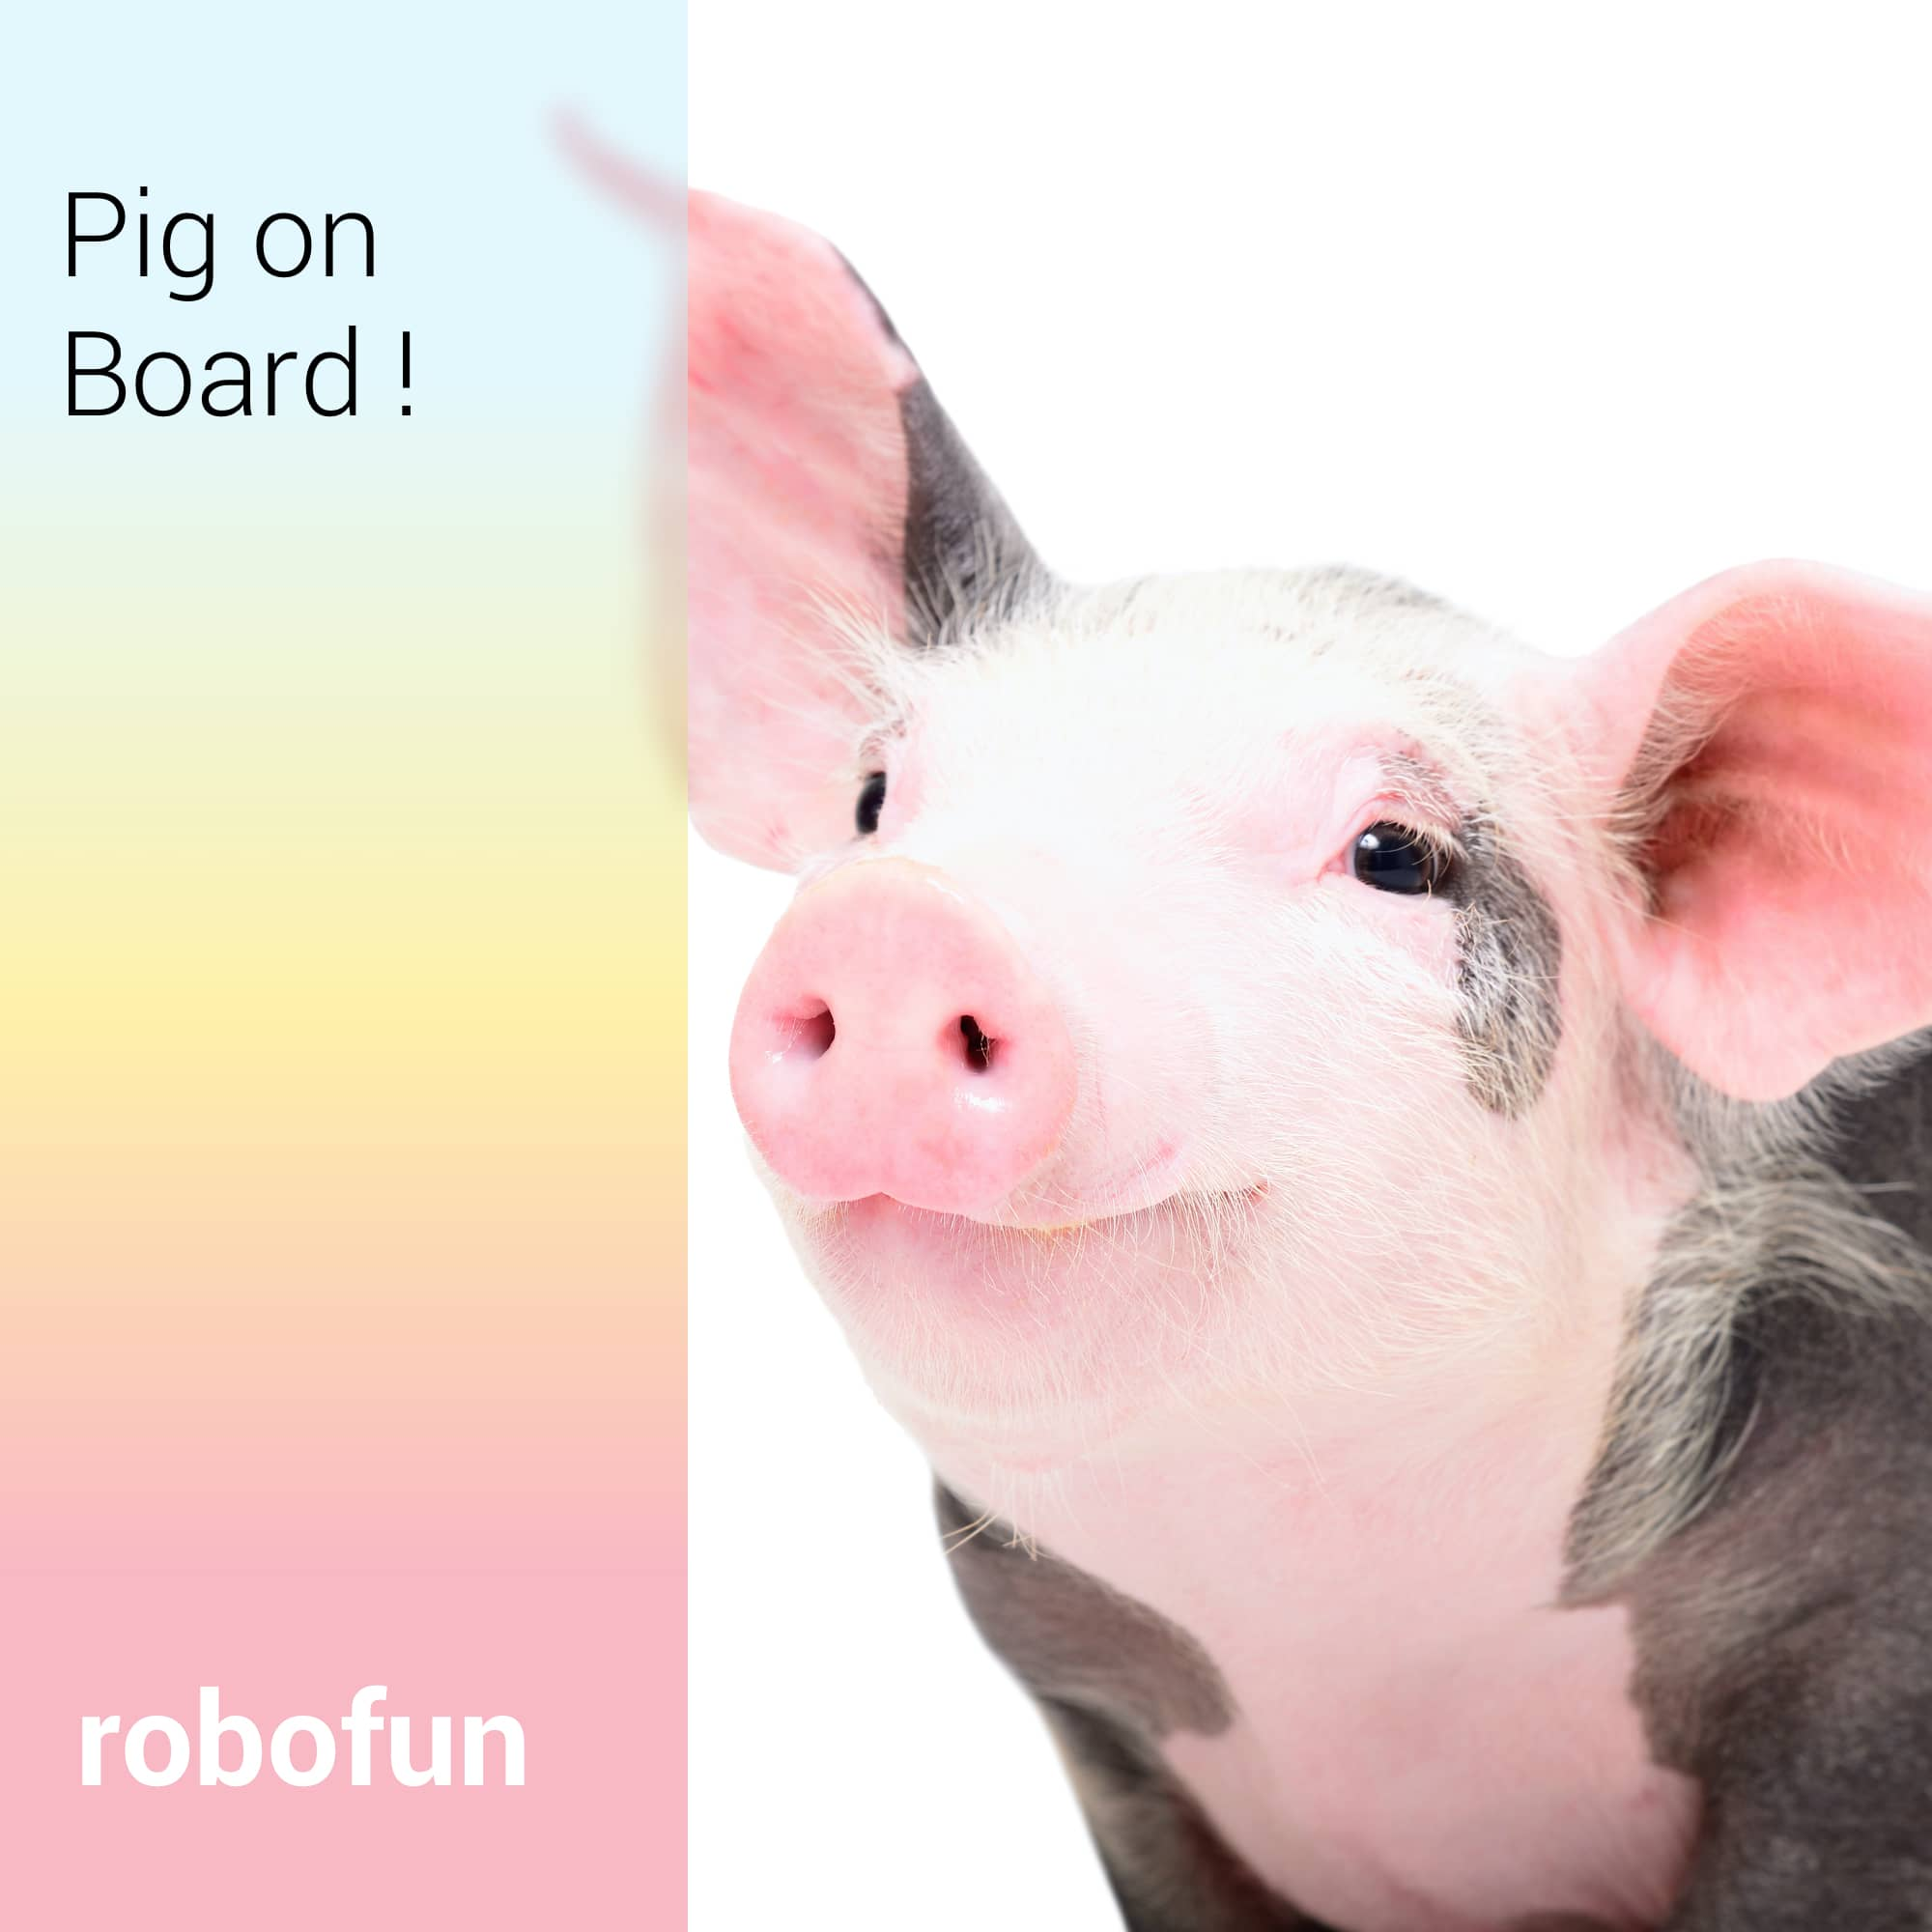 Pig On Board!